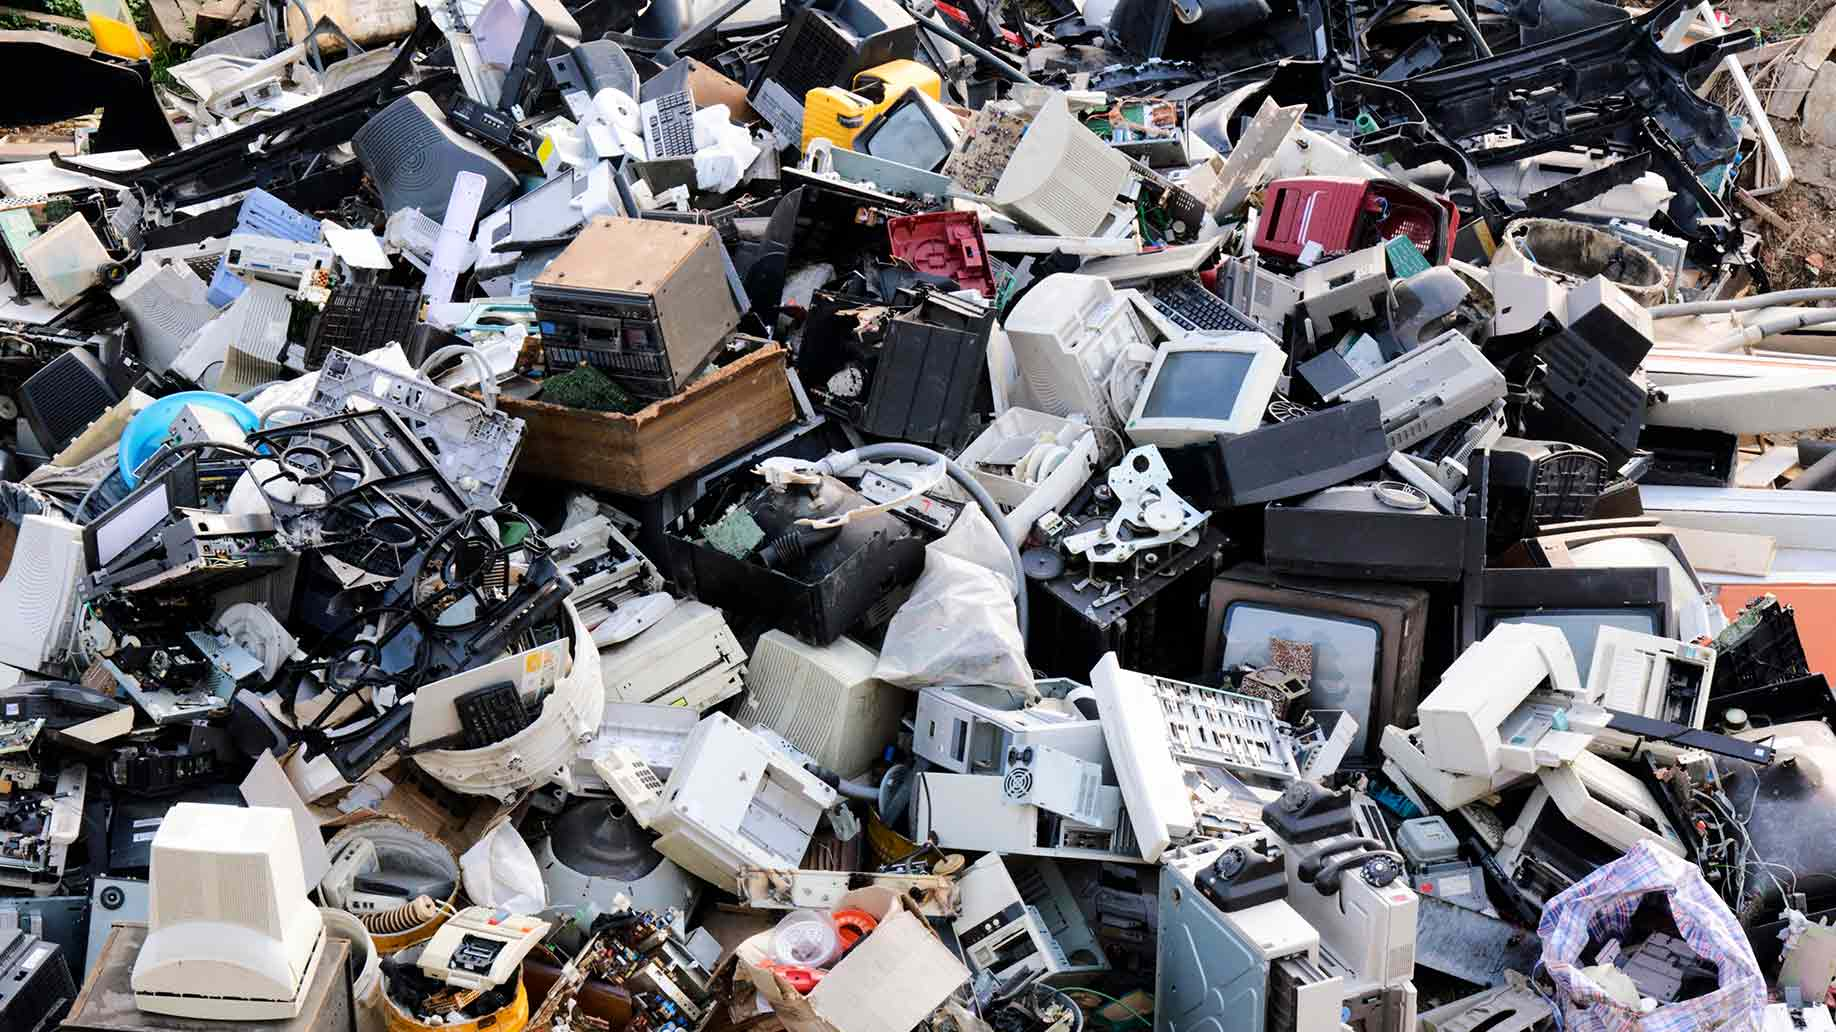 Electronic Waste E Recycling Disposal Facts Statistics It Scrap Hard Drive Circuit Board Ready